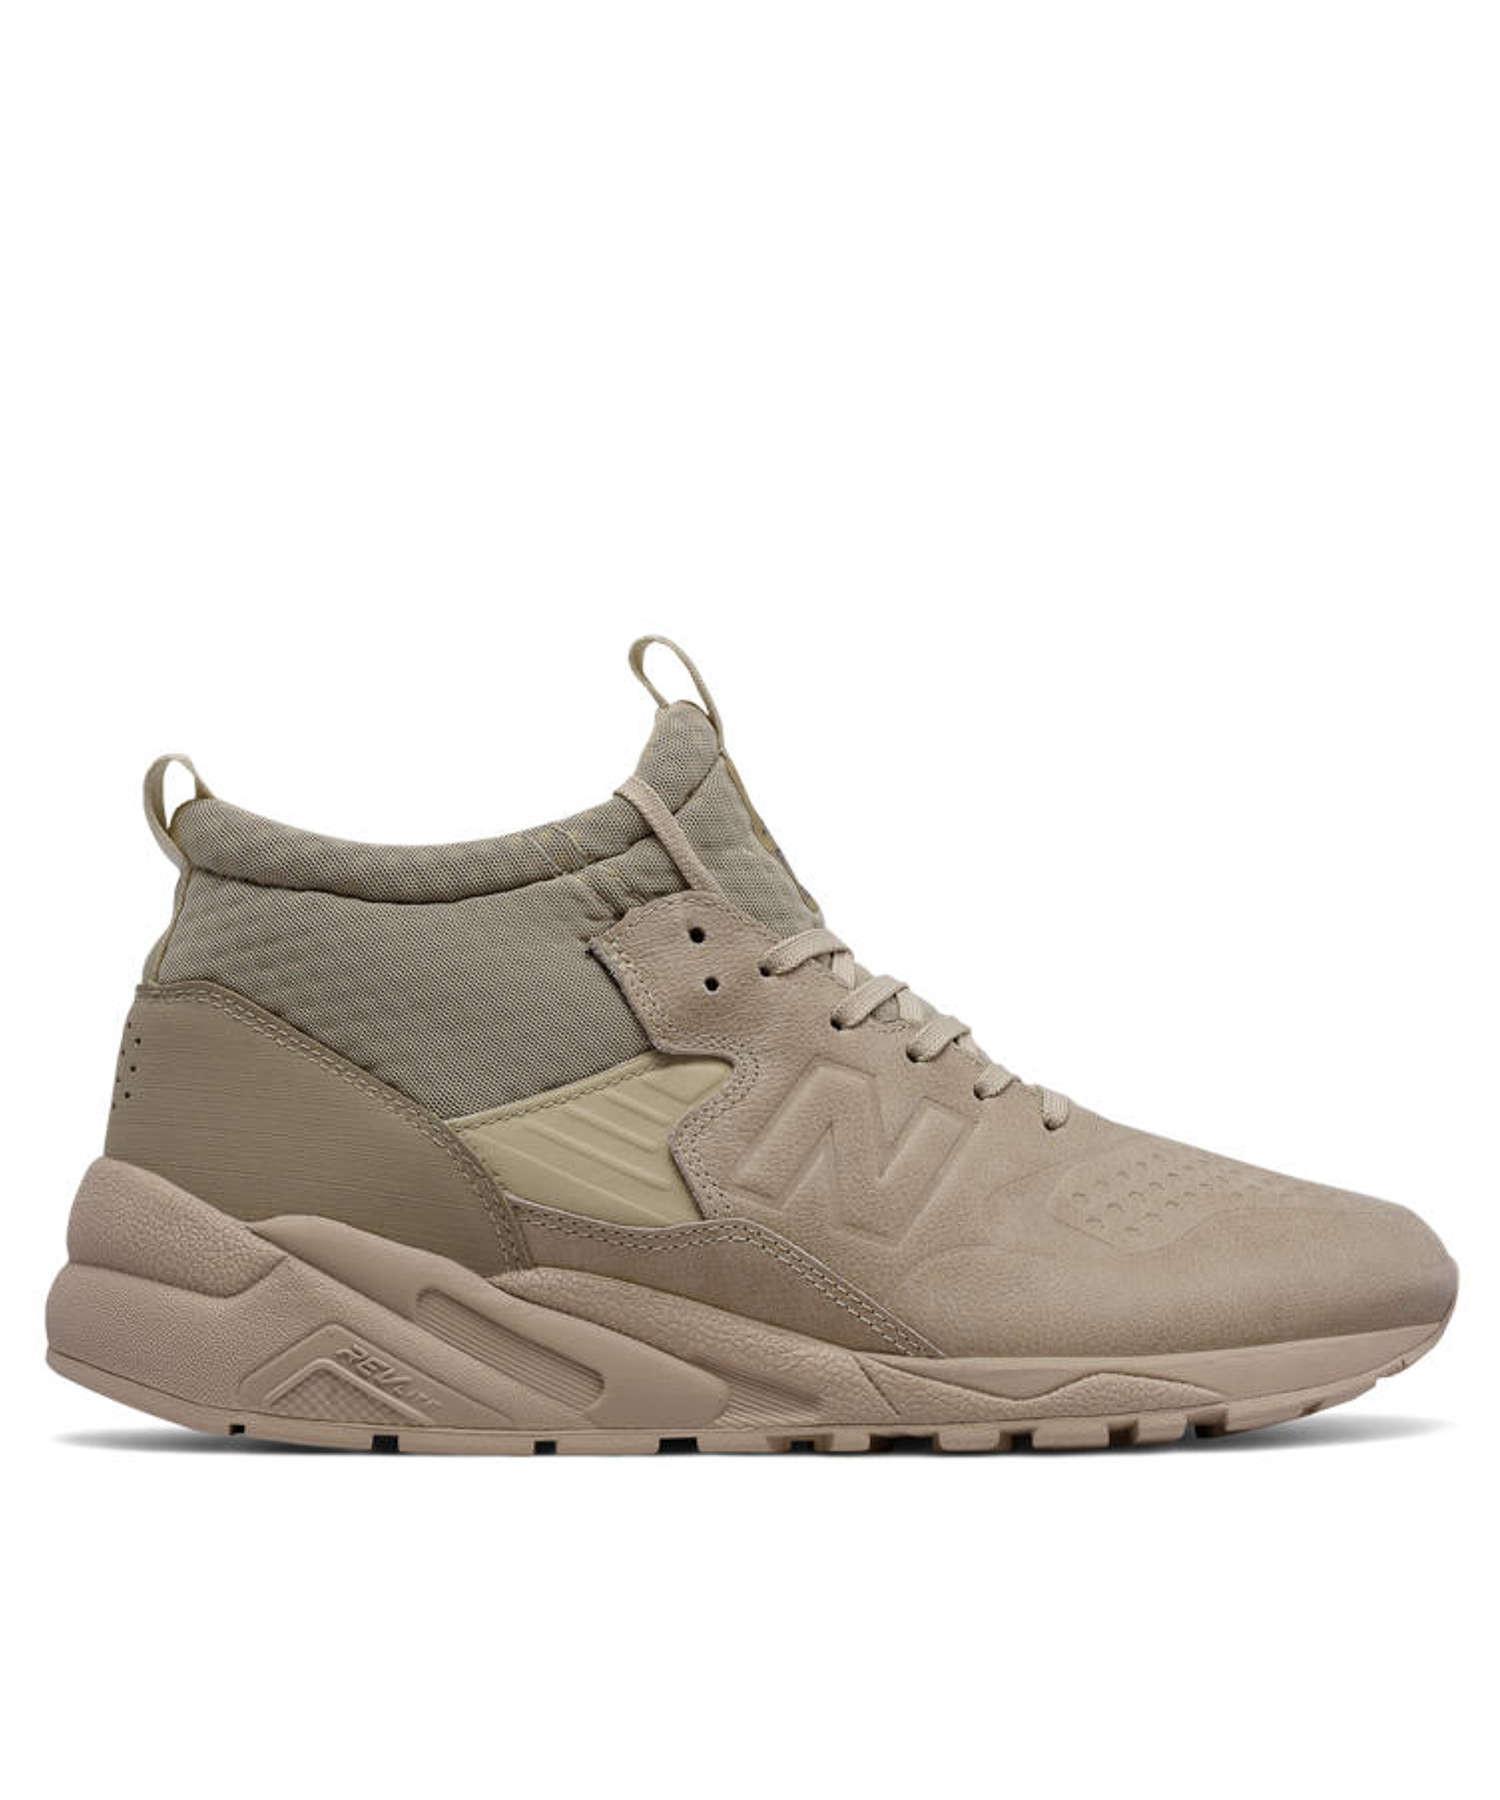 new balance men's 580 deconstructed mid trainers beige